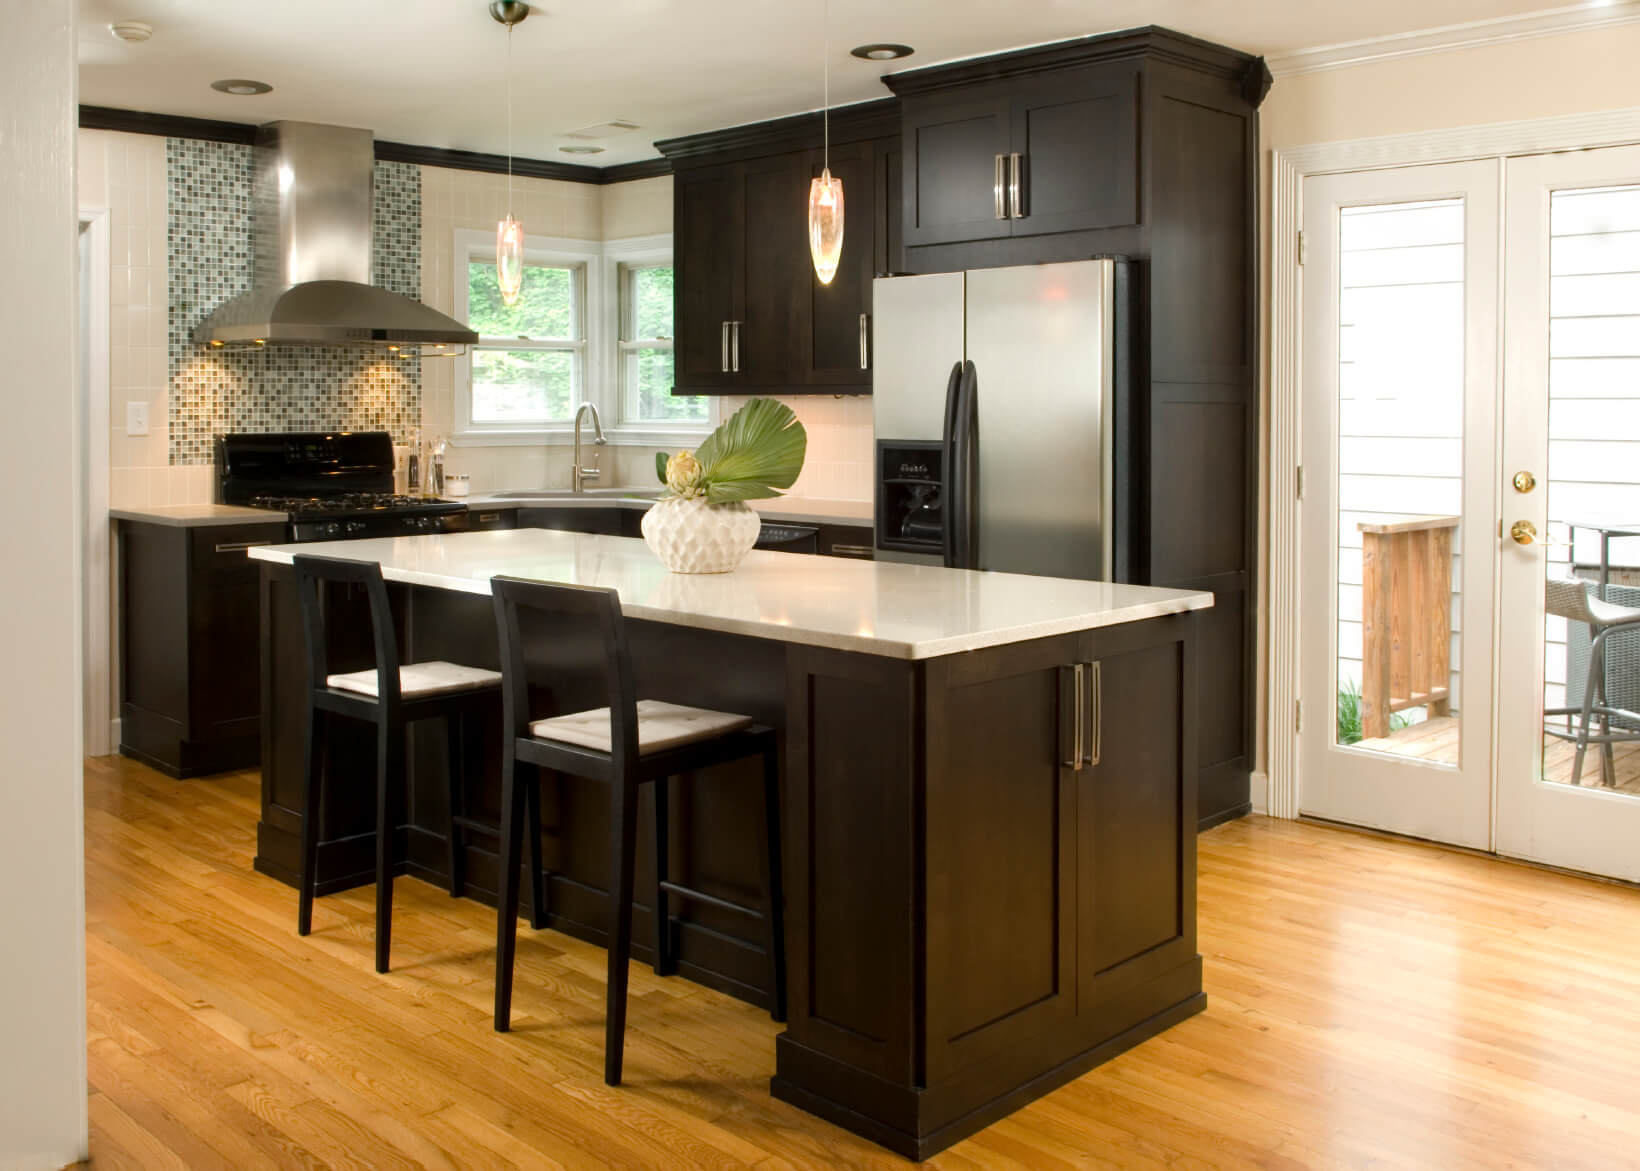 Kitchens Lighting 52 Dark Kitchens With Dark Wood And Black Kitchen Cabinets